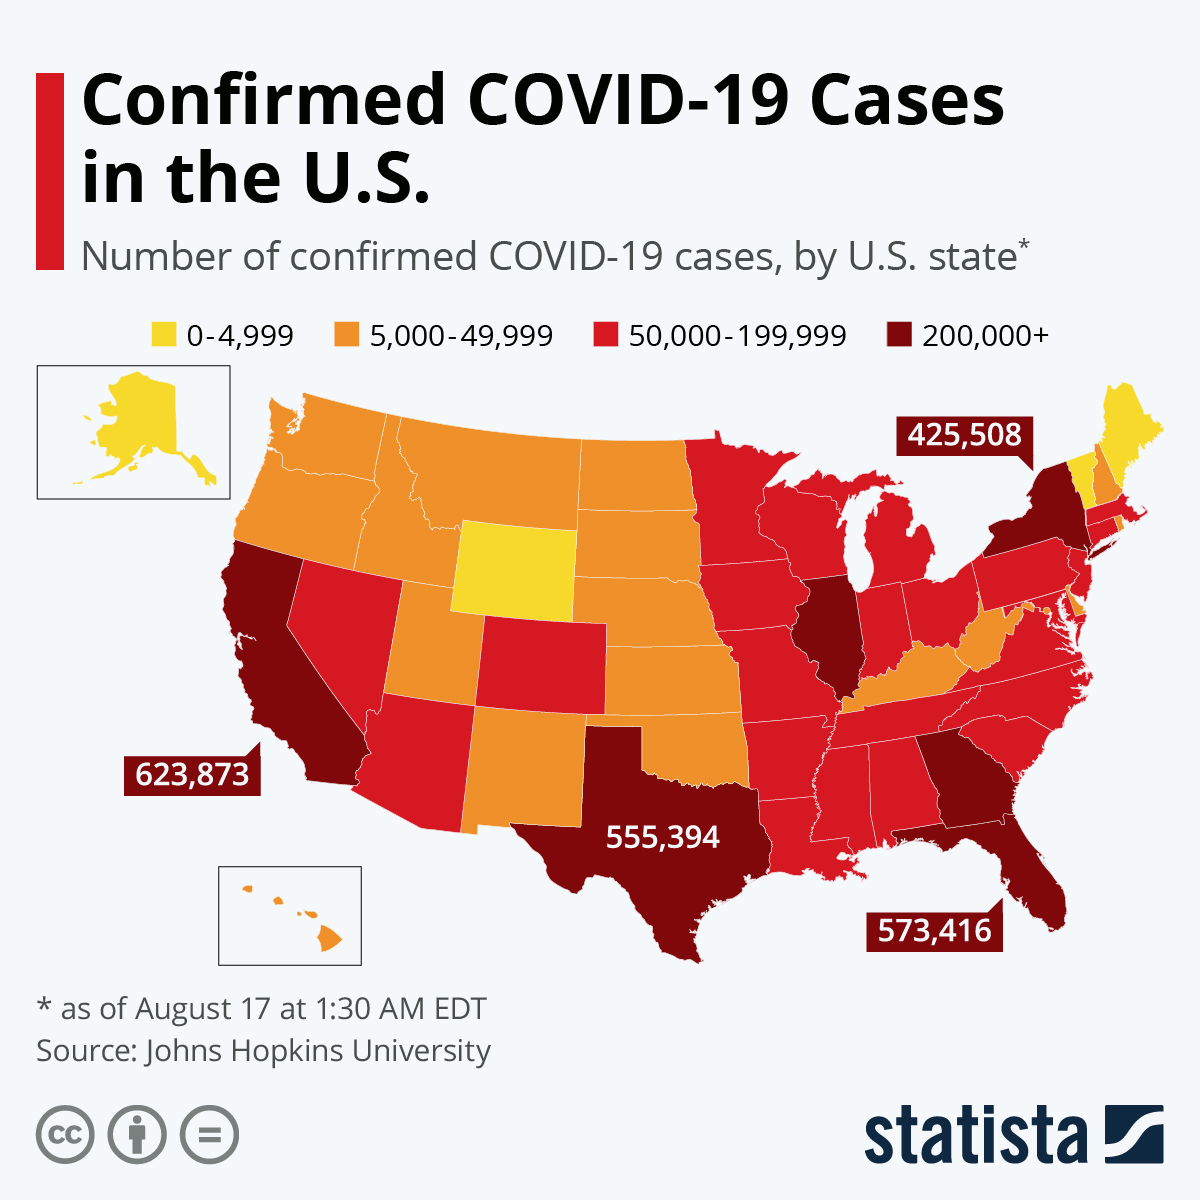 'Confirmed COVID-19 Cases in the U.S.' Number of confirmed COVID-19 cases, by U.S. state. Choropleth map, updated weekly.